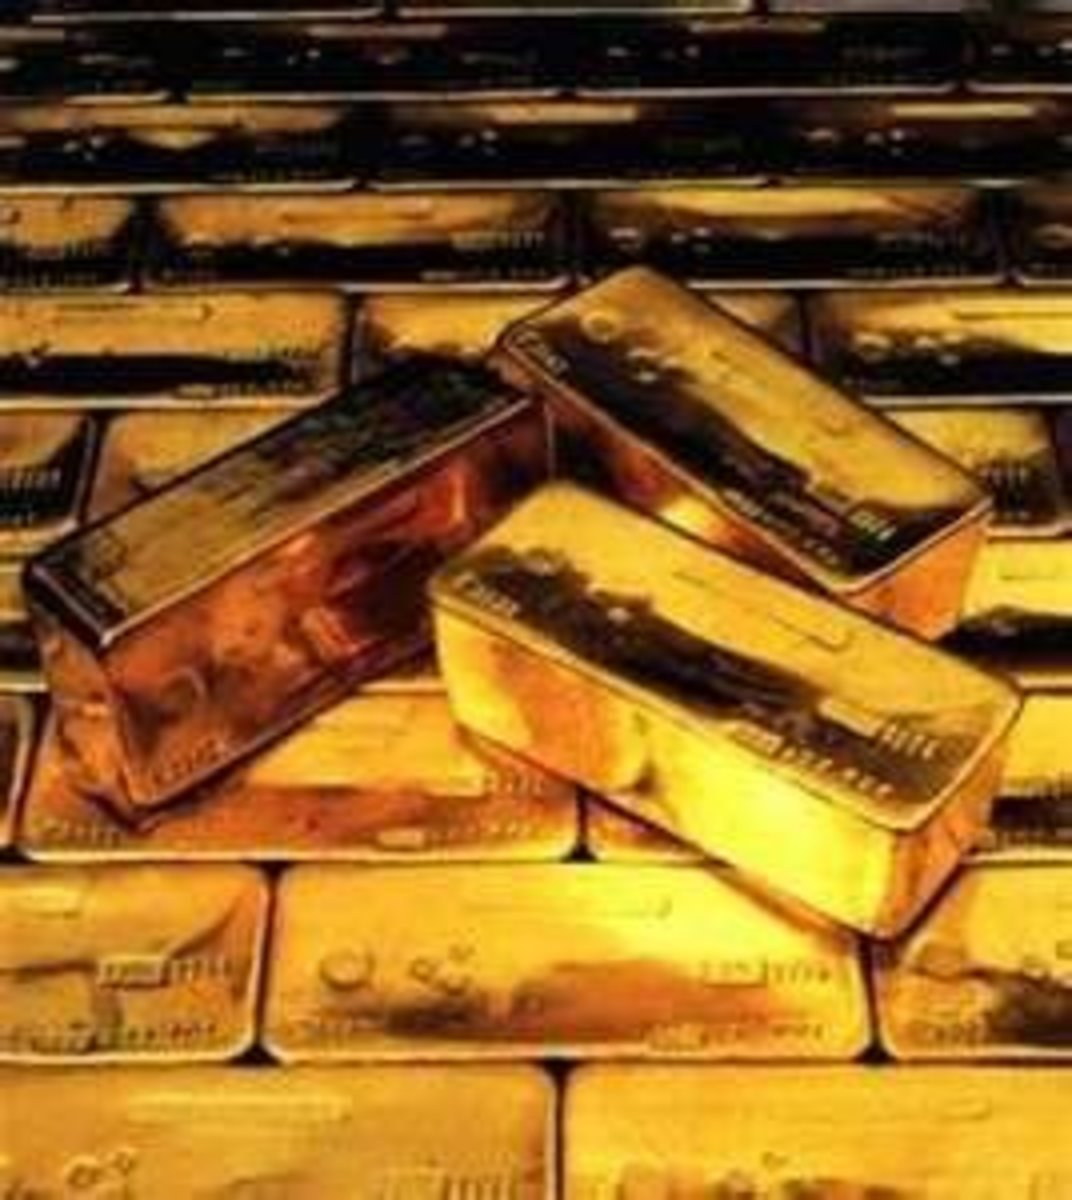 Fort Know Gold Bars image credit: http://2sistersfromtheright.blogspot.com/2011/08/is-there-gold-in-fort-knox.html